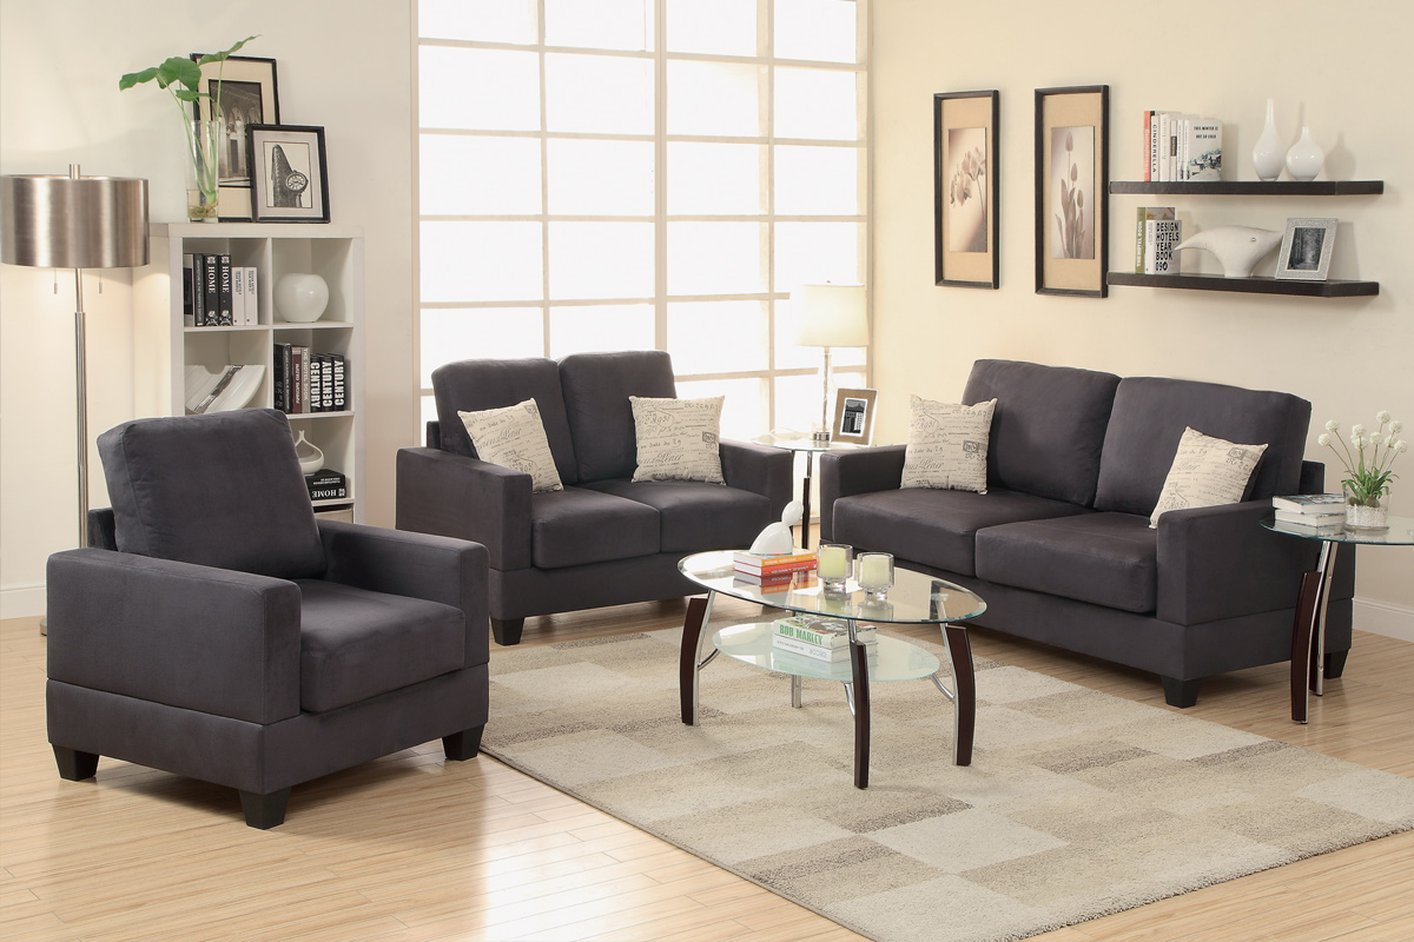 Poundex Rebel F7911 Black Fabric Sofa Loveseat And Chair Set Steal A Sofa Furniture Outlet Los